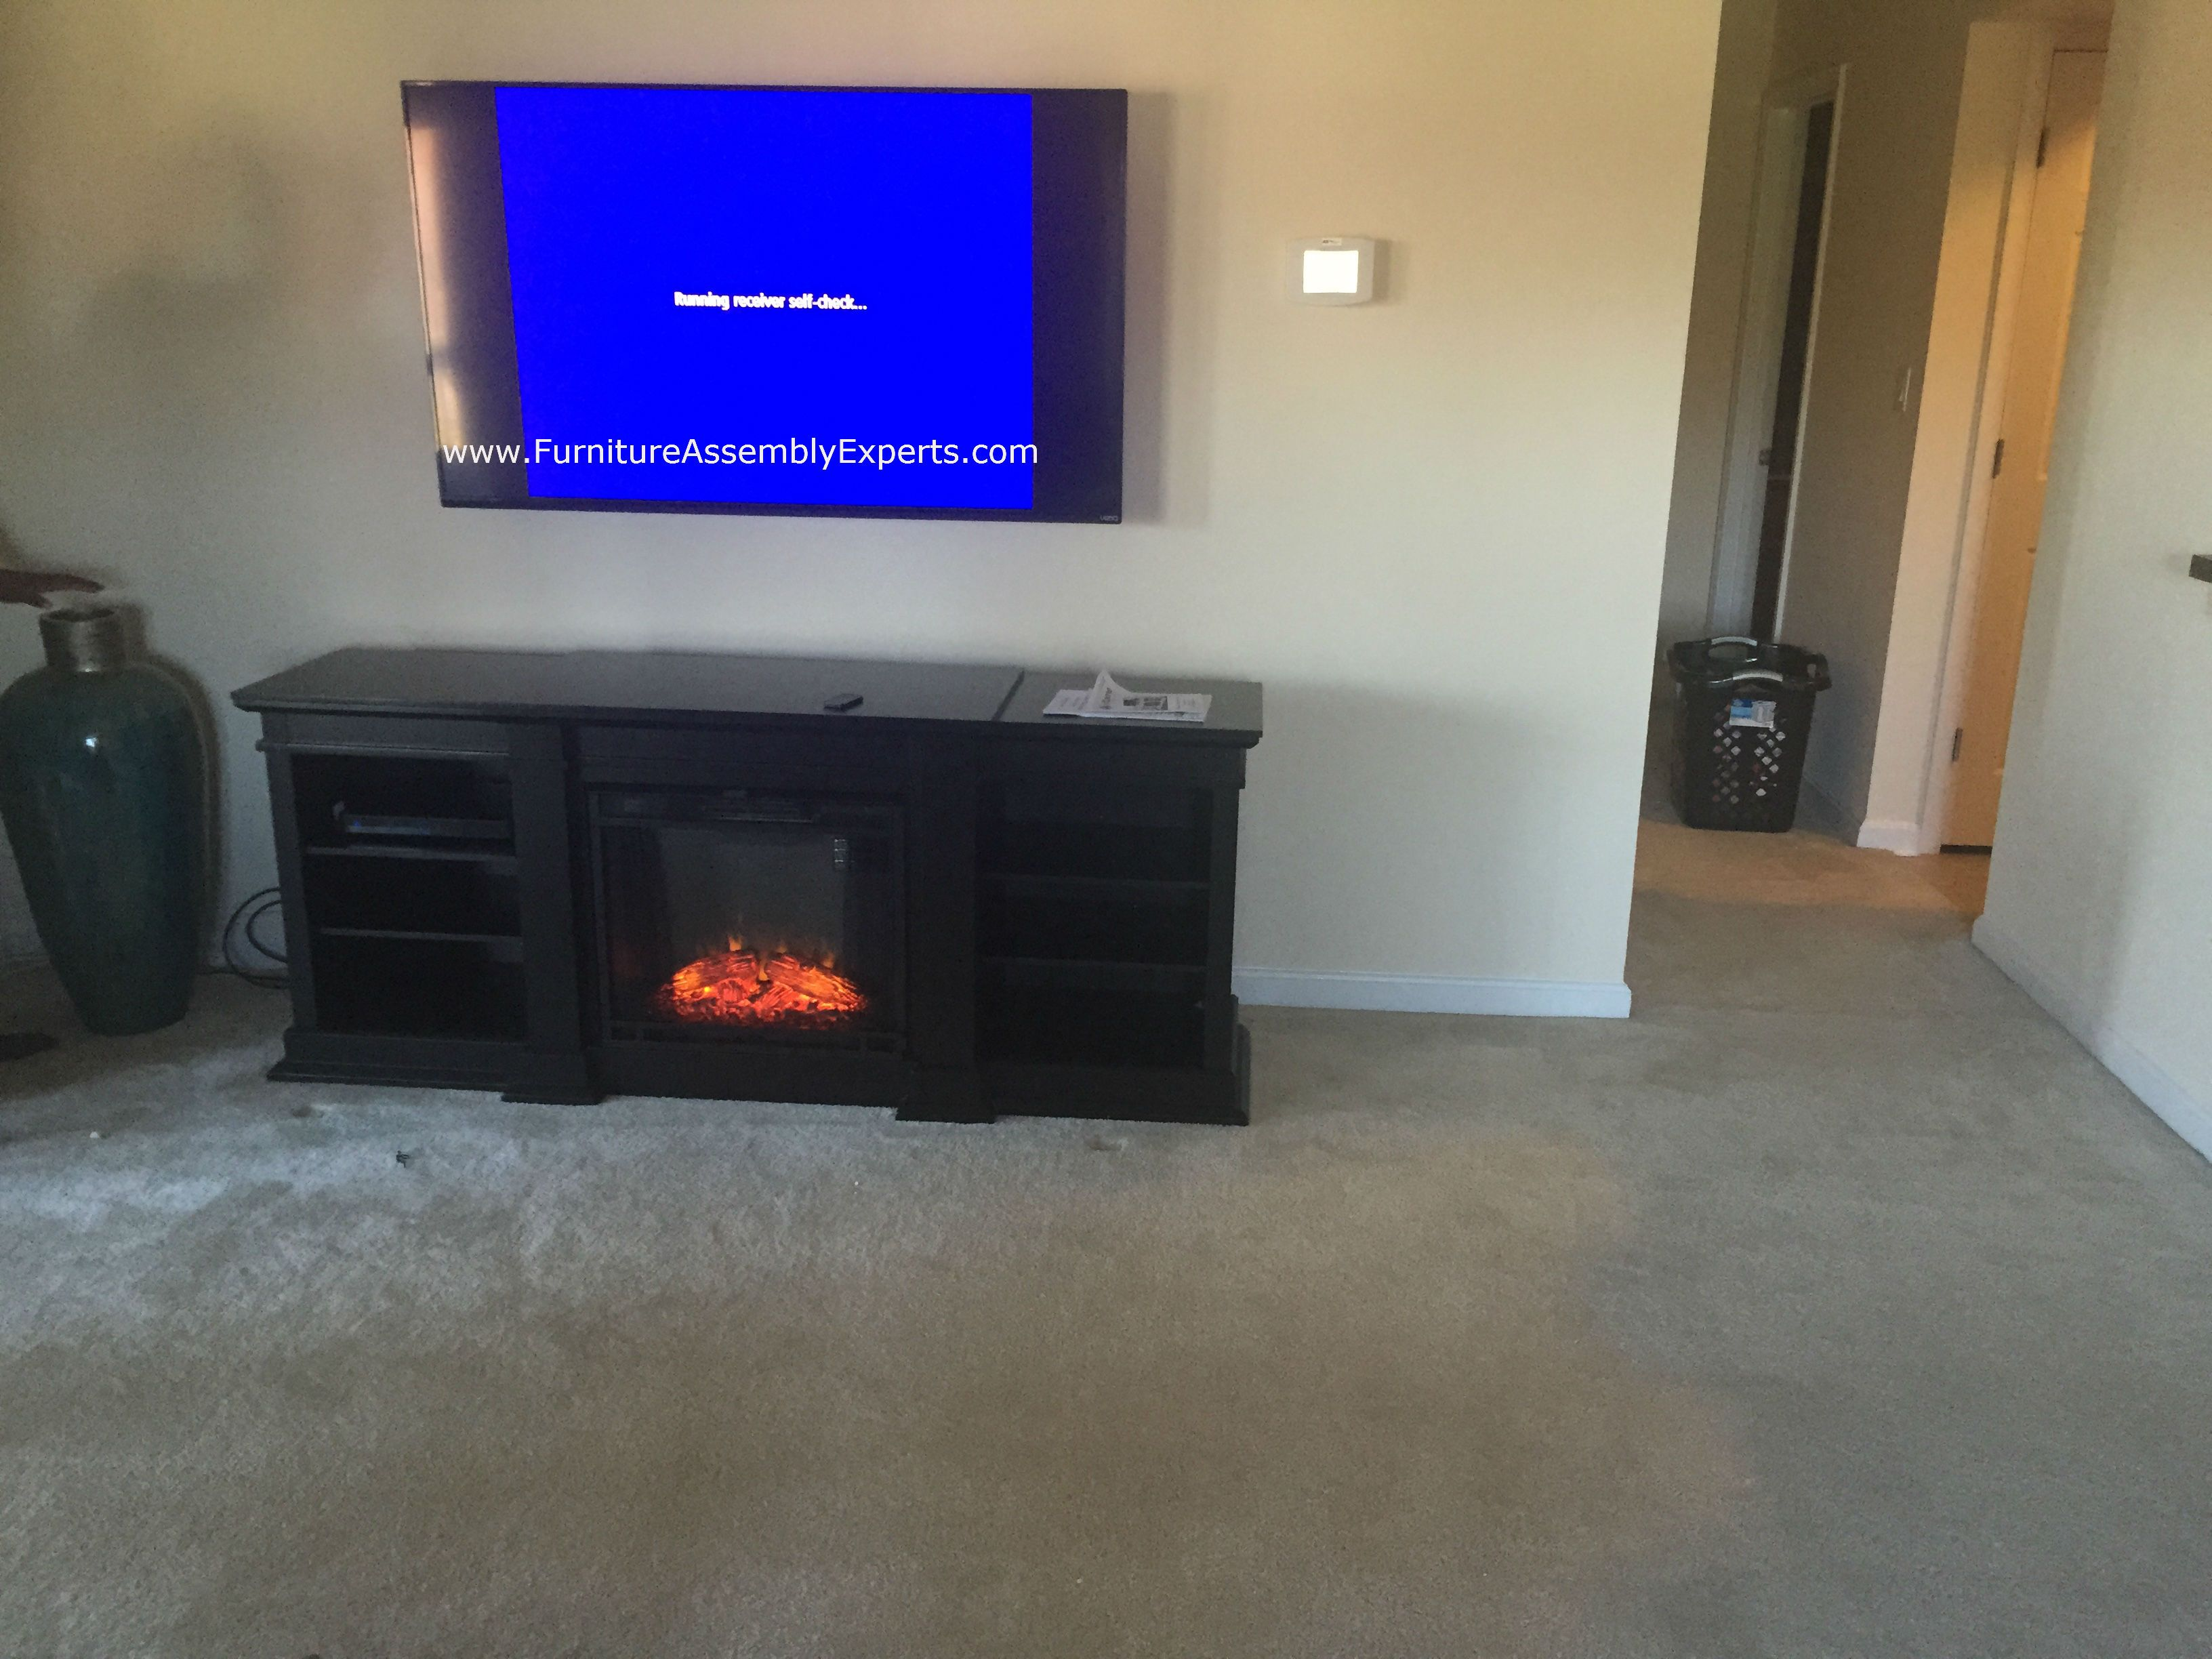 Amazon Fireplace Tv Stand Assembled For A Customer In Raleigh Nc